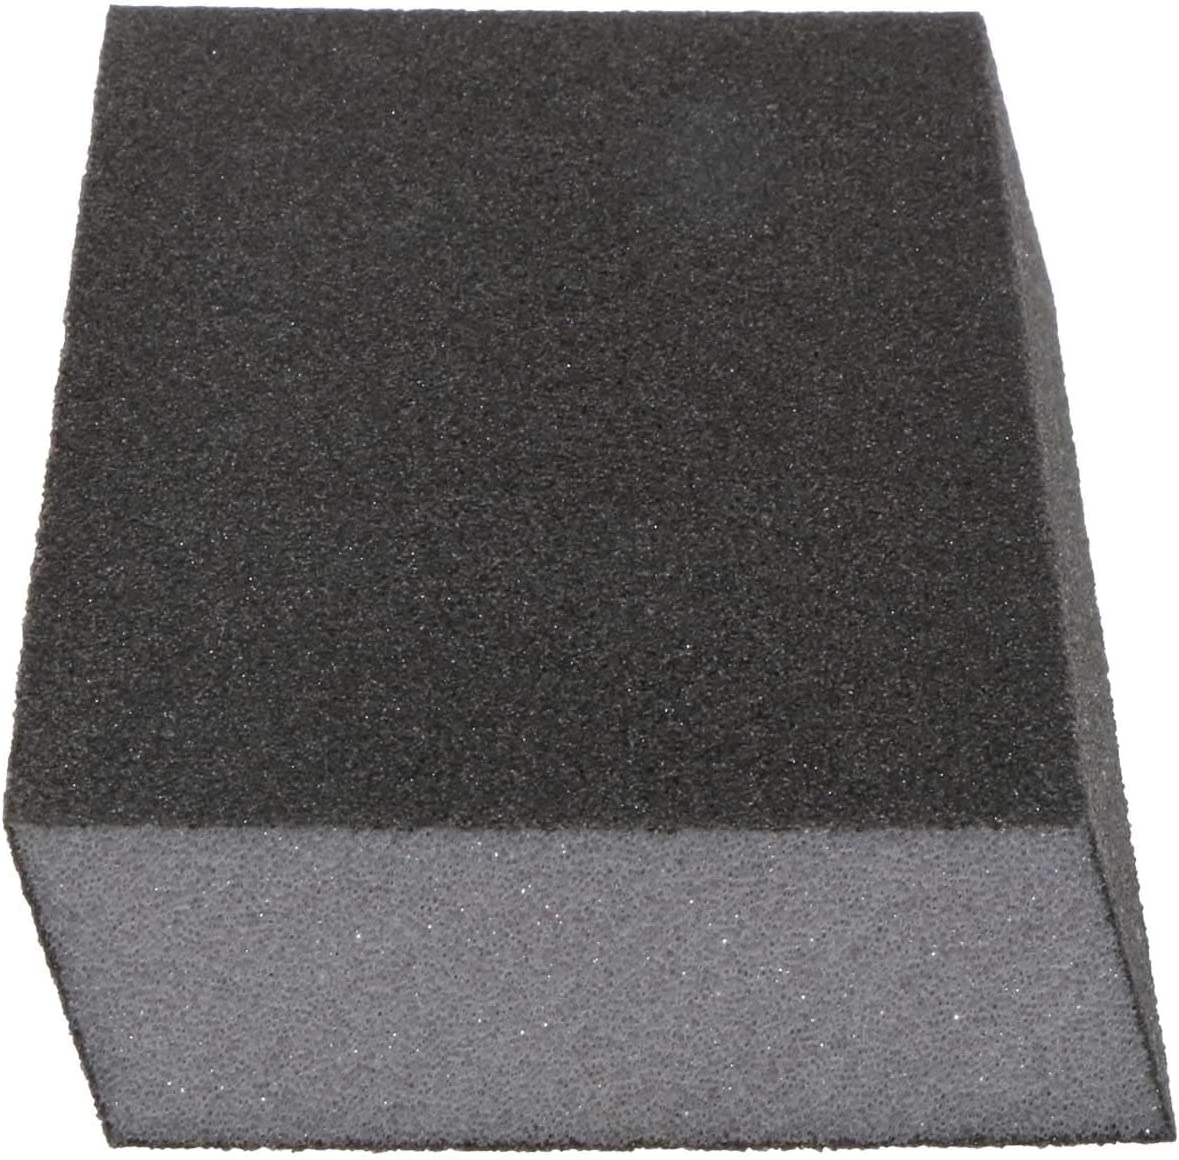 All-Wall Bulk Dual Angle Sanding 新登場 100 Med ◇限定Special Price Sponges Fine ct